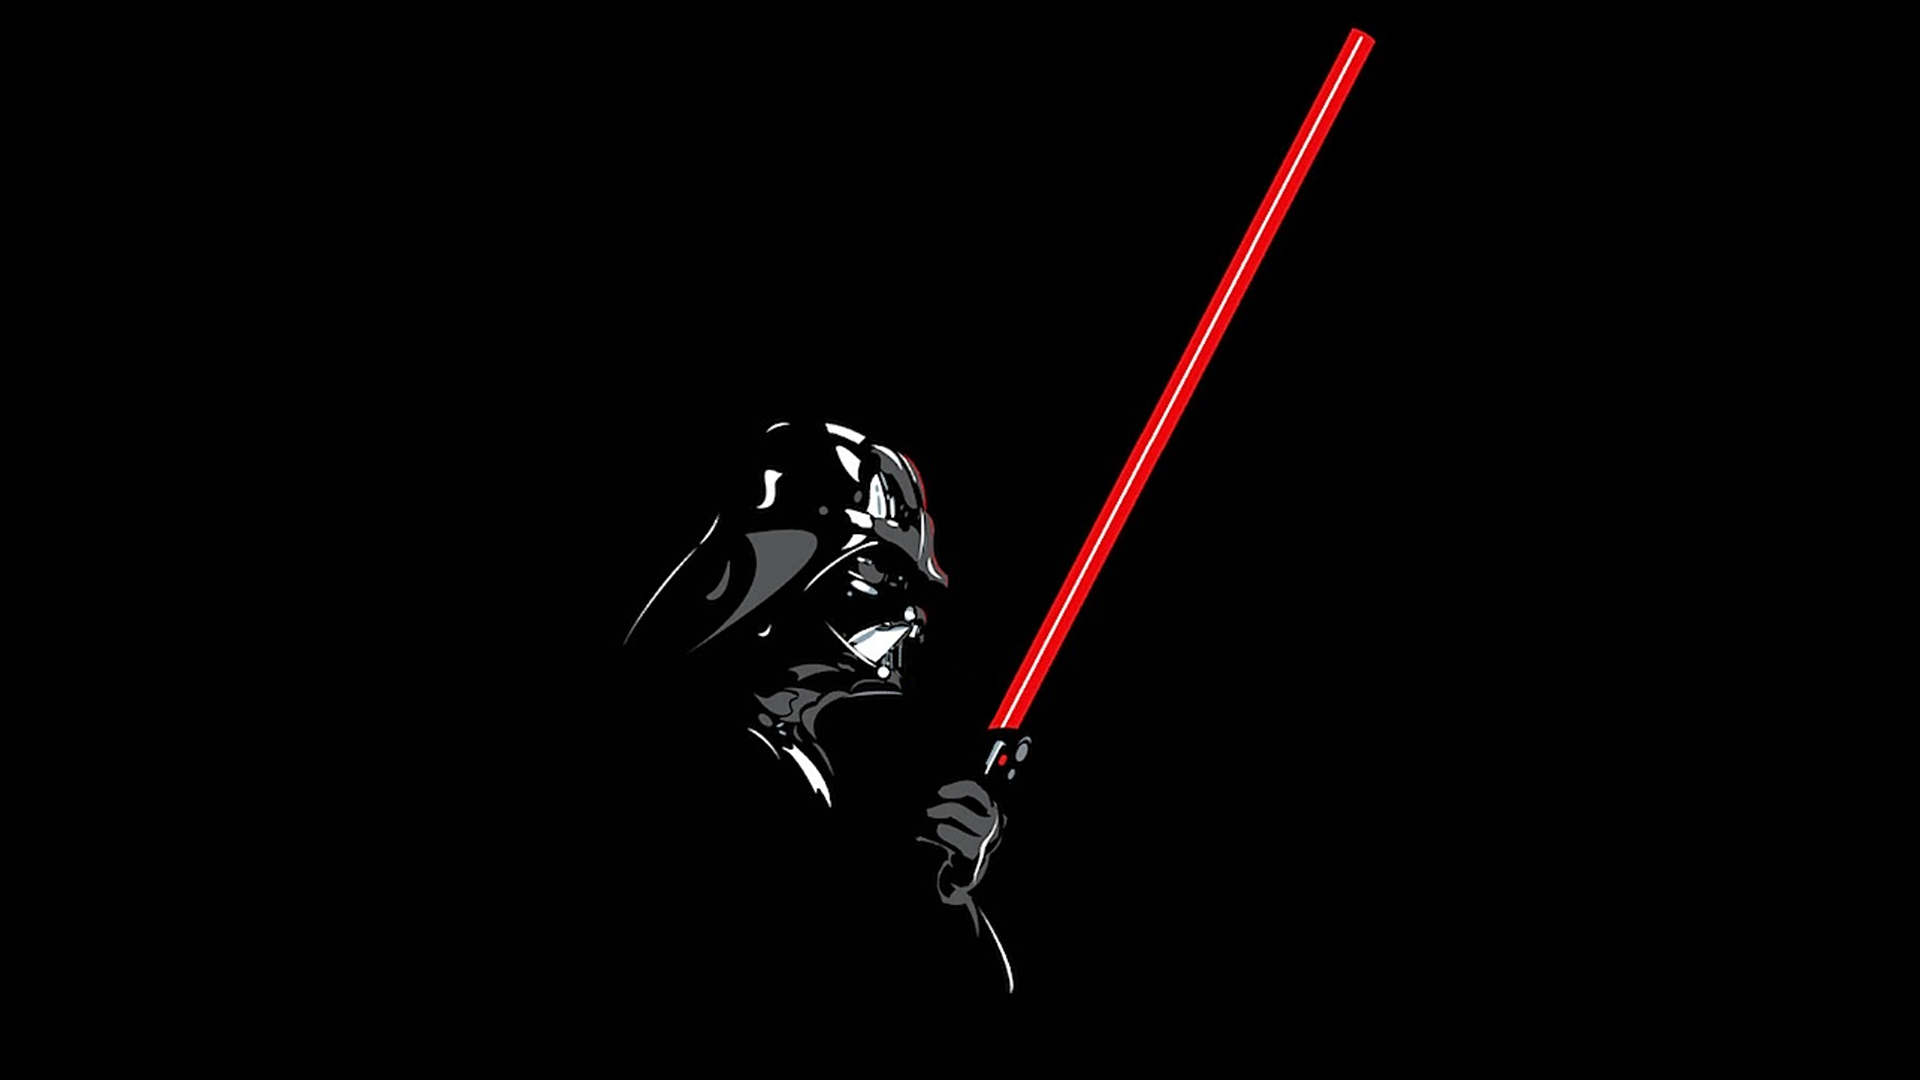 Sci Fi - Star Wars  Wallpaper